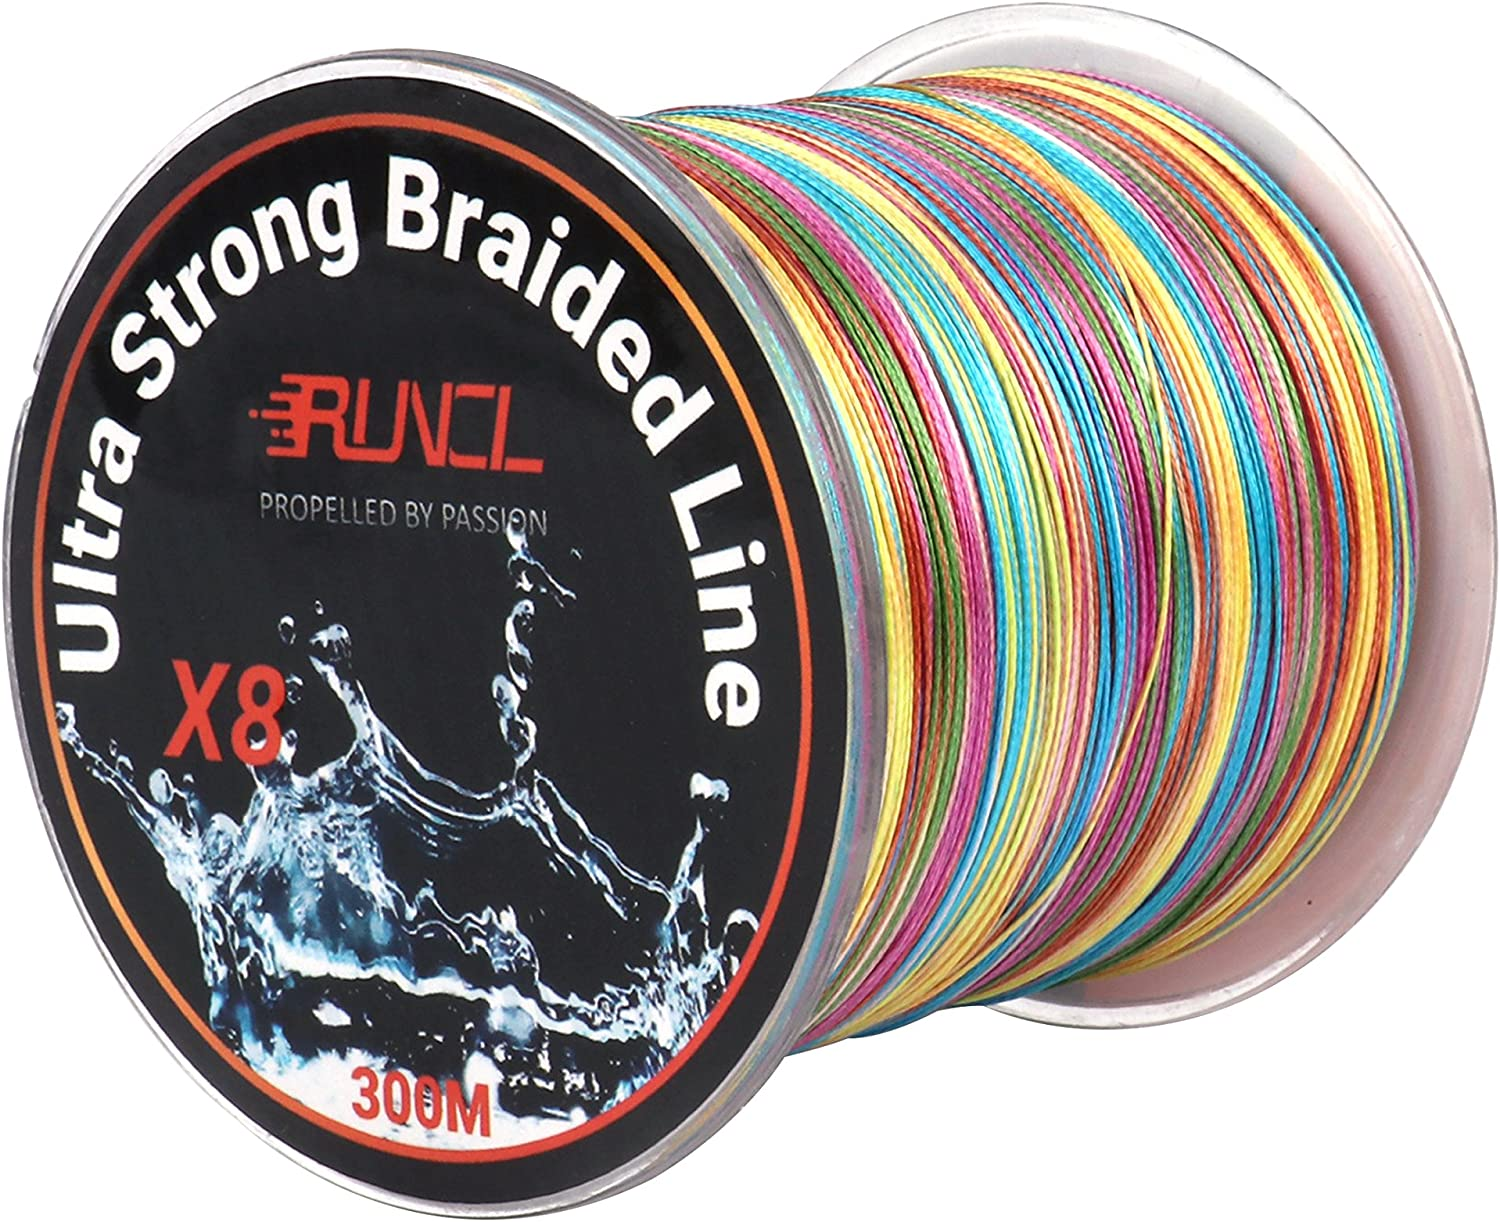 RUNCL Braided Fishing Line 8 Strands, Ultra Strong Braided Line – Smaller Diameter, Zero Memory, Zero Extension, Multiple Colors – 1093Yds 1000M 546Yds 500M 328Yds 300M 109Yds 100M, 12-100LB